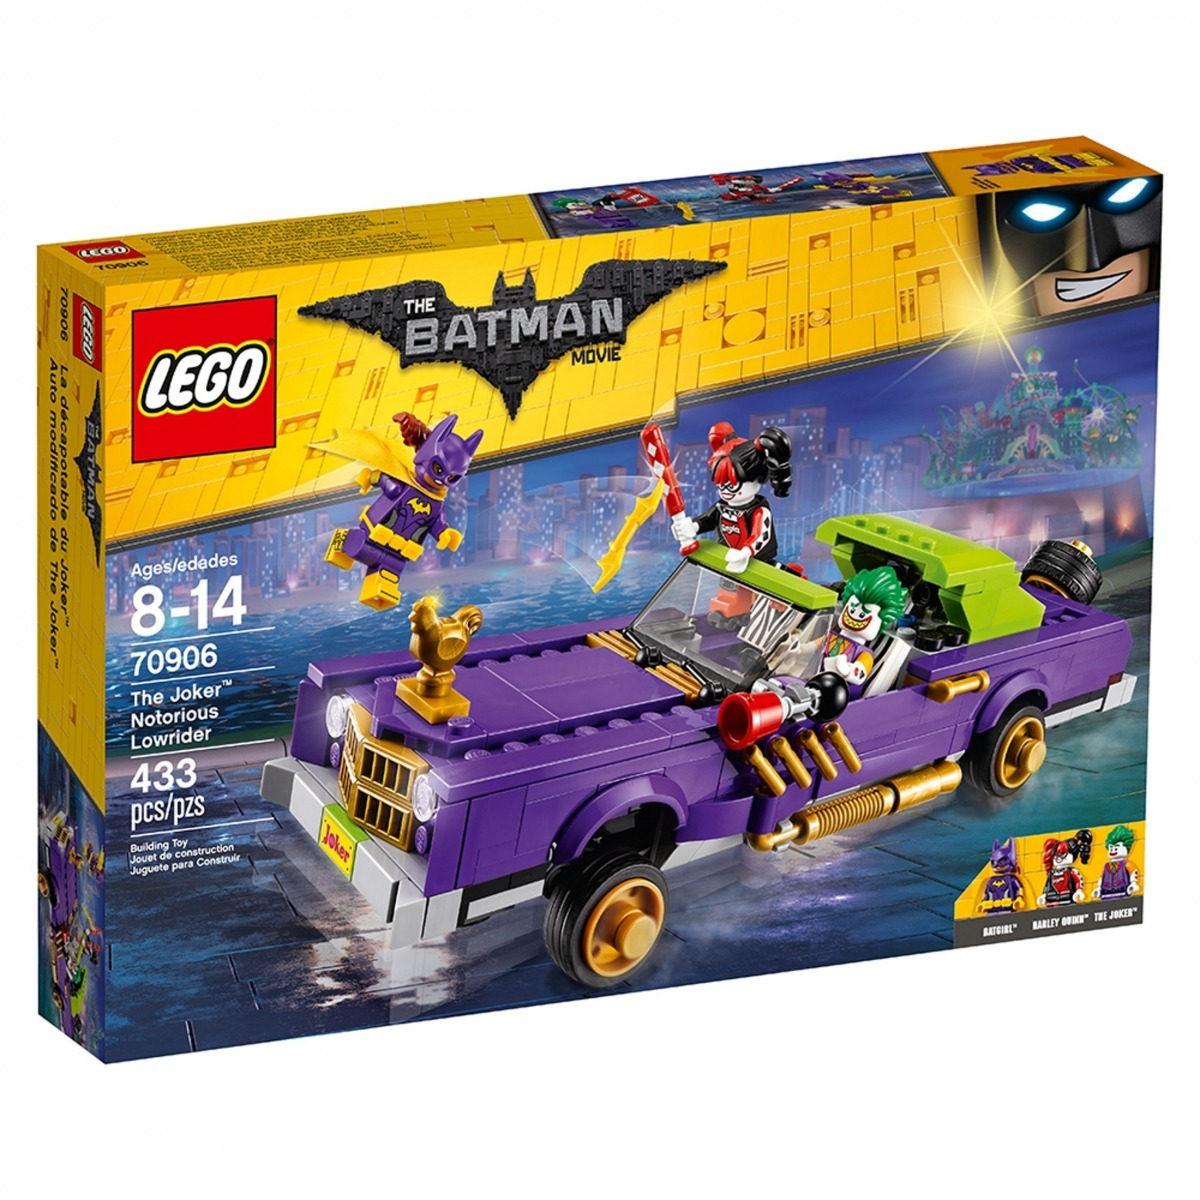 lego 70906 the joker notorious lowrider scaled